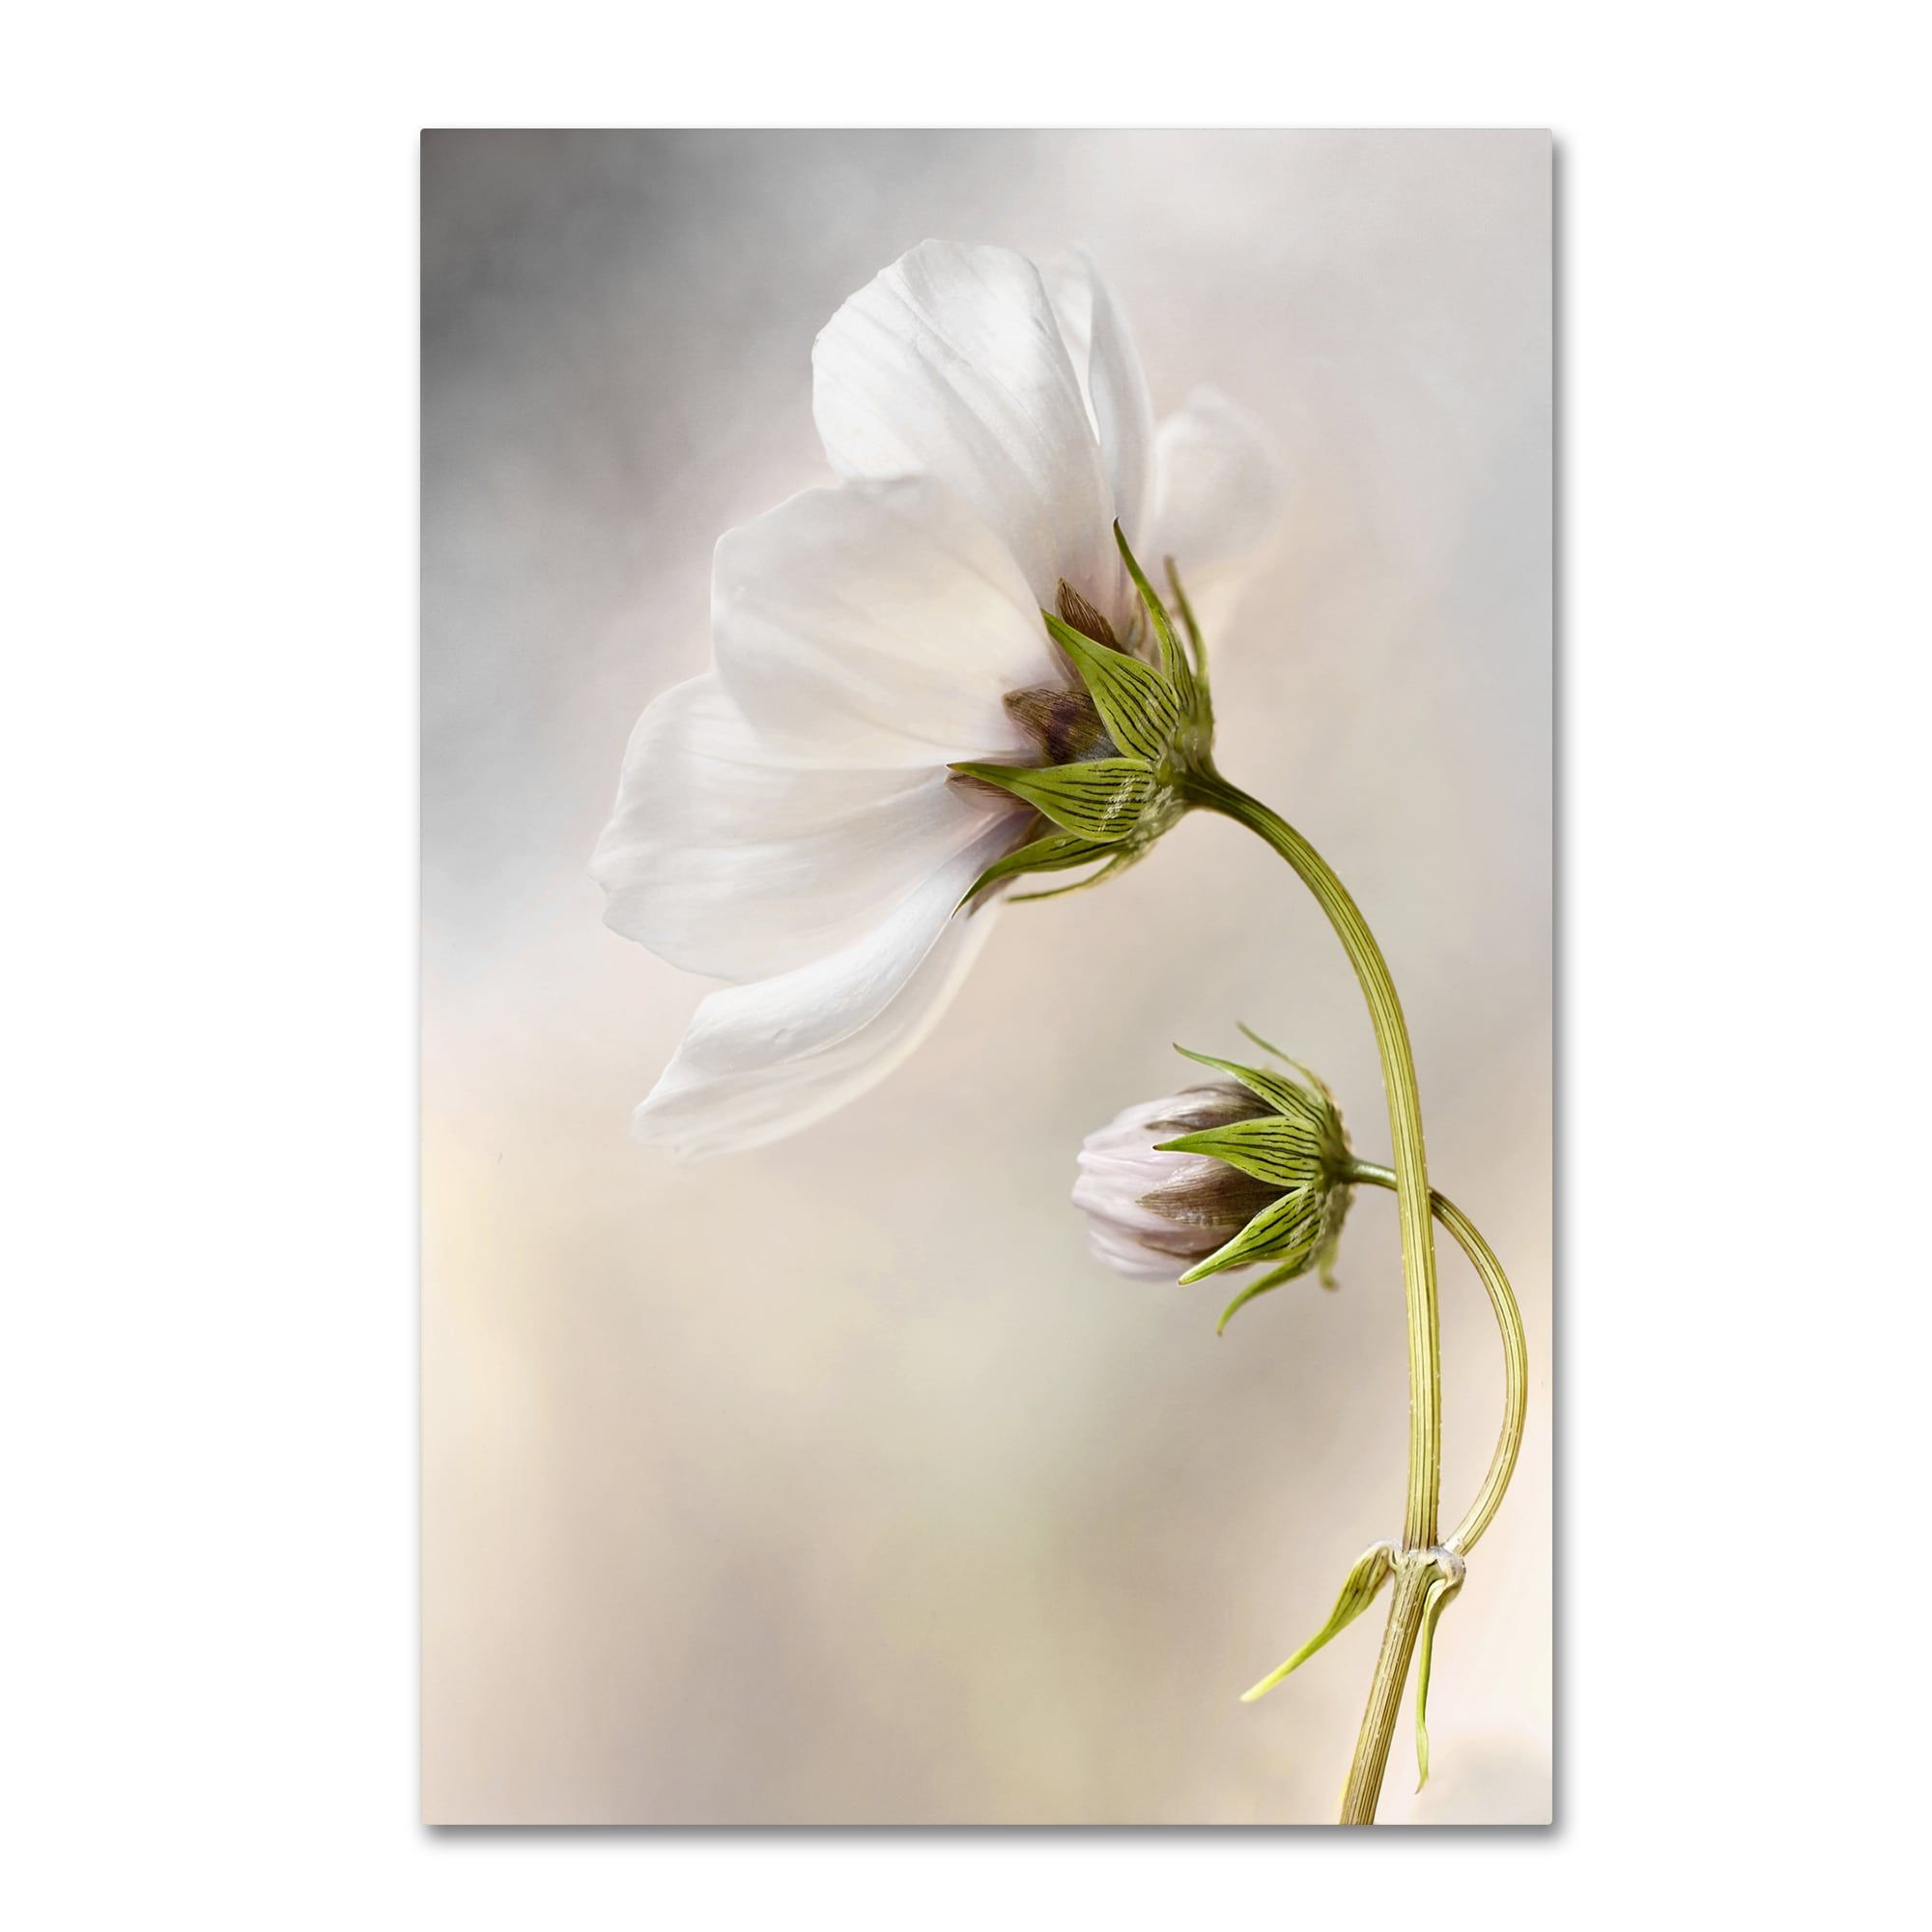 Mandy disher uheavenly cosmosu canvas art products pinterest